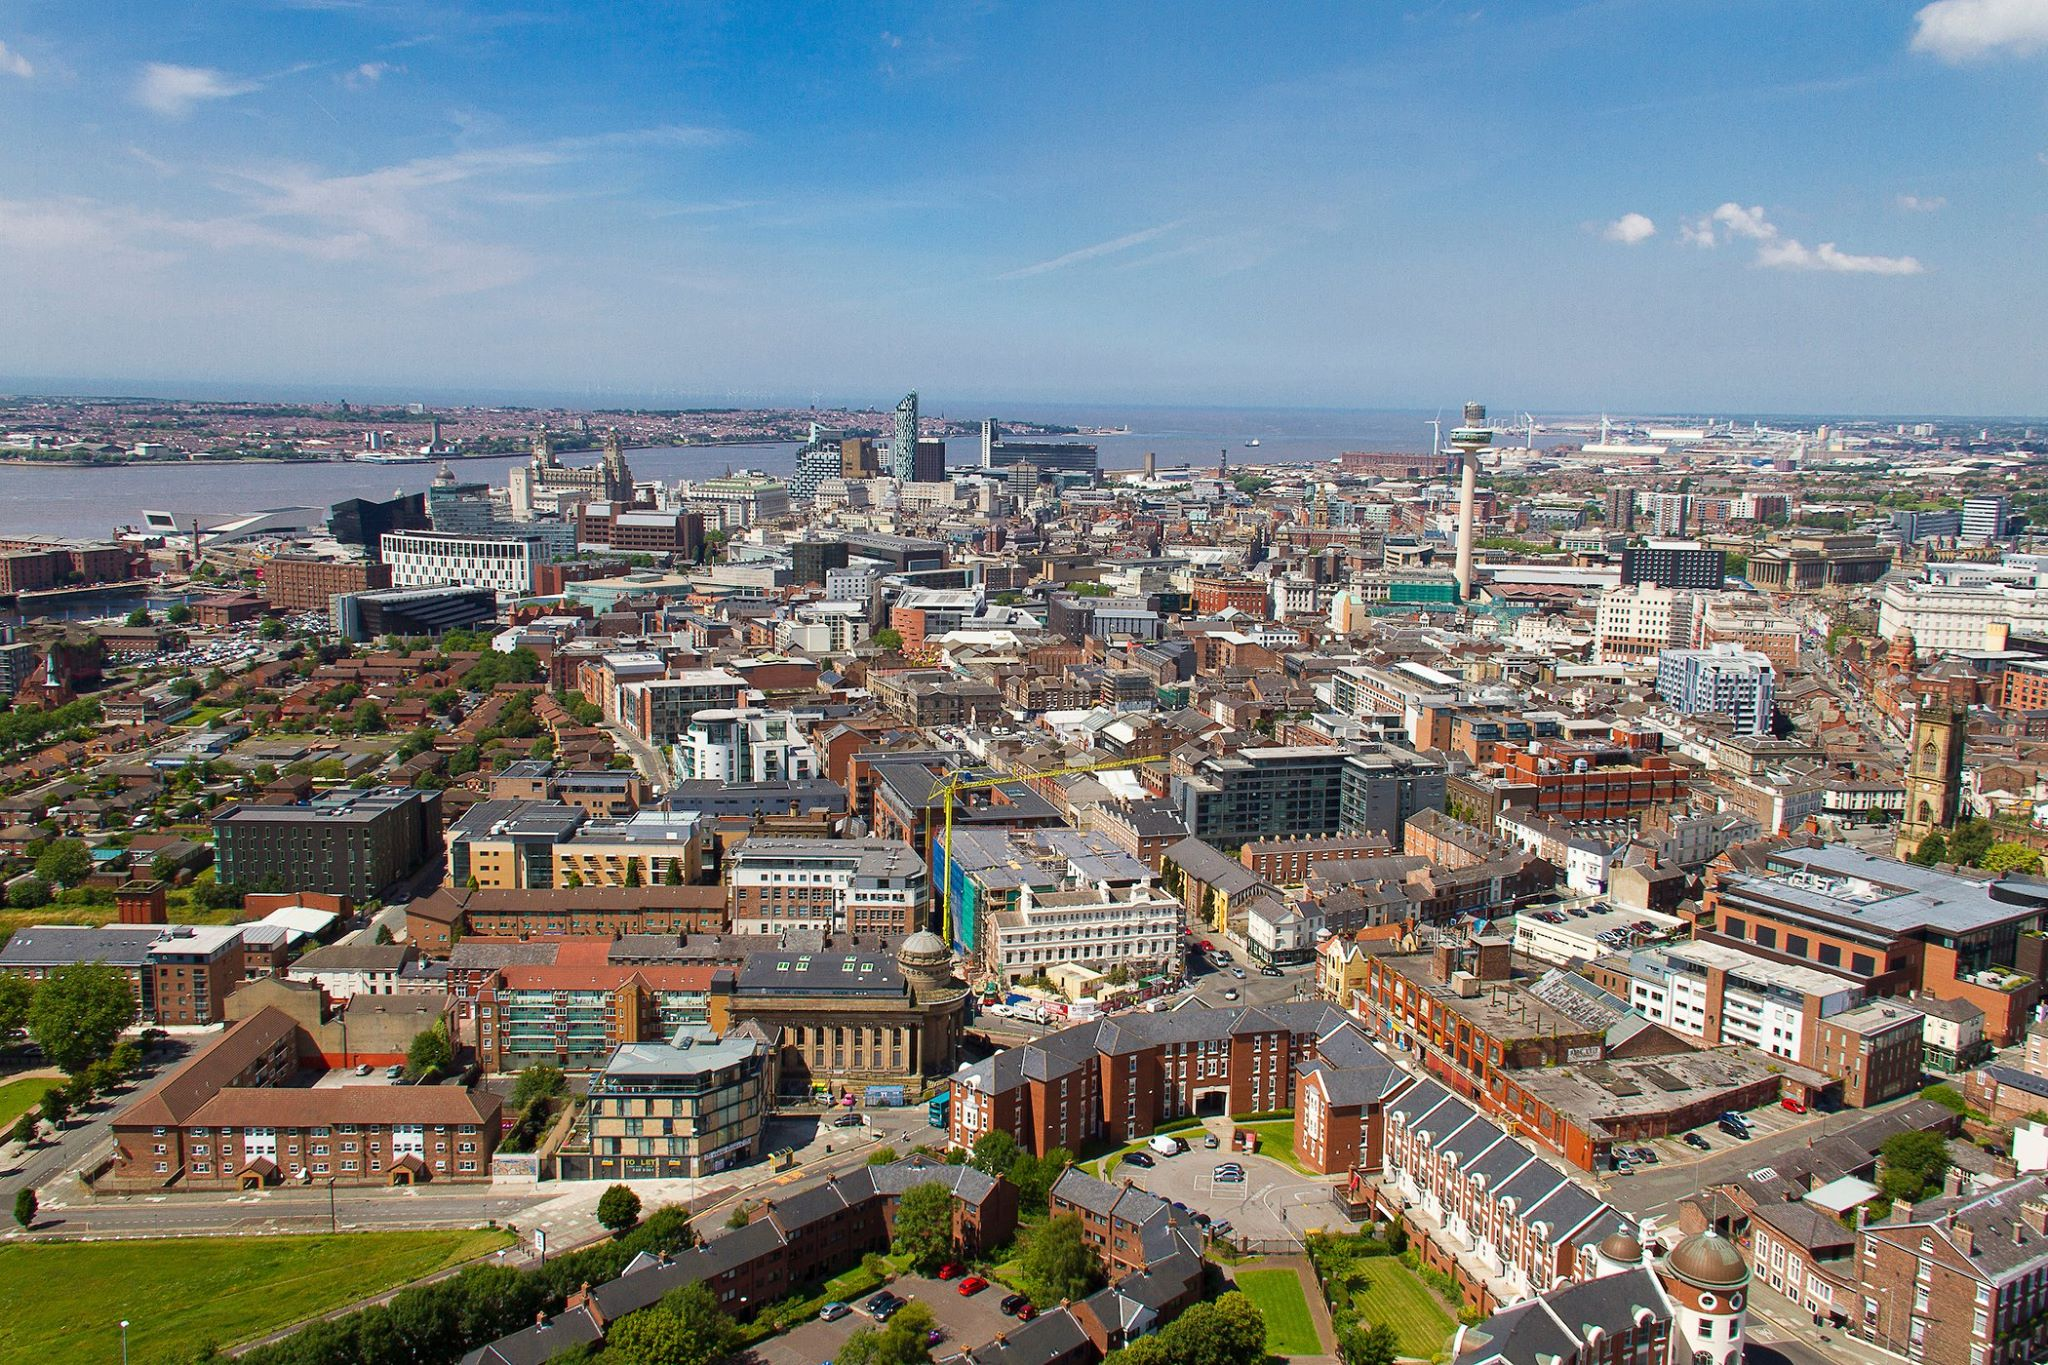 Party Universities, with an image of the Liverpool skyline during the day